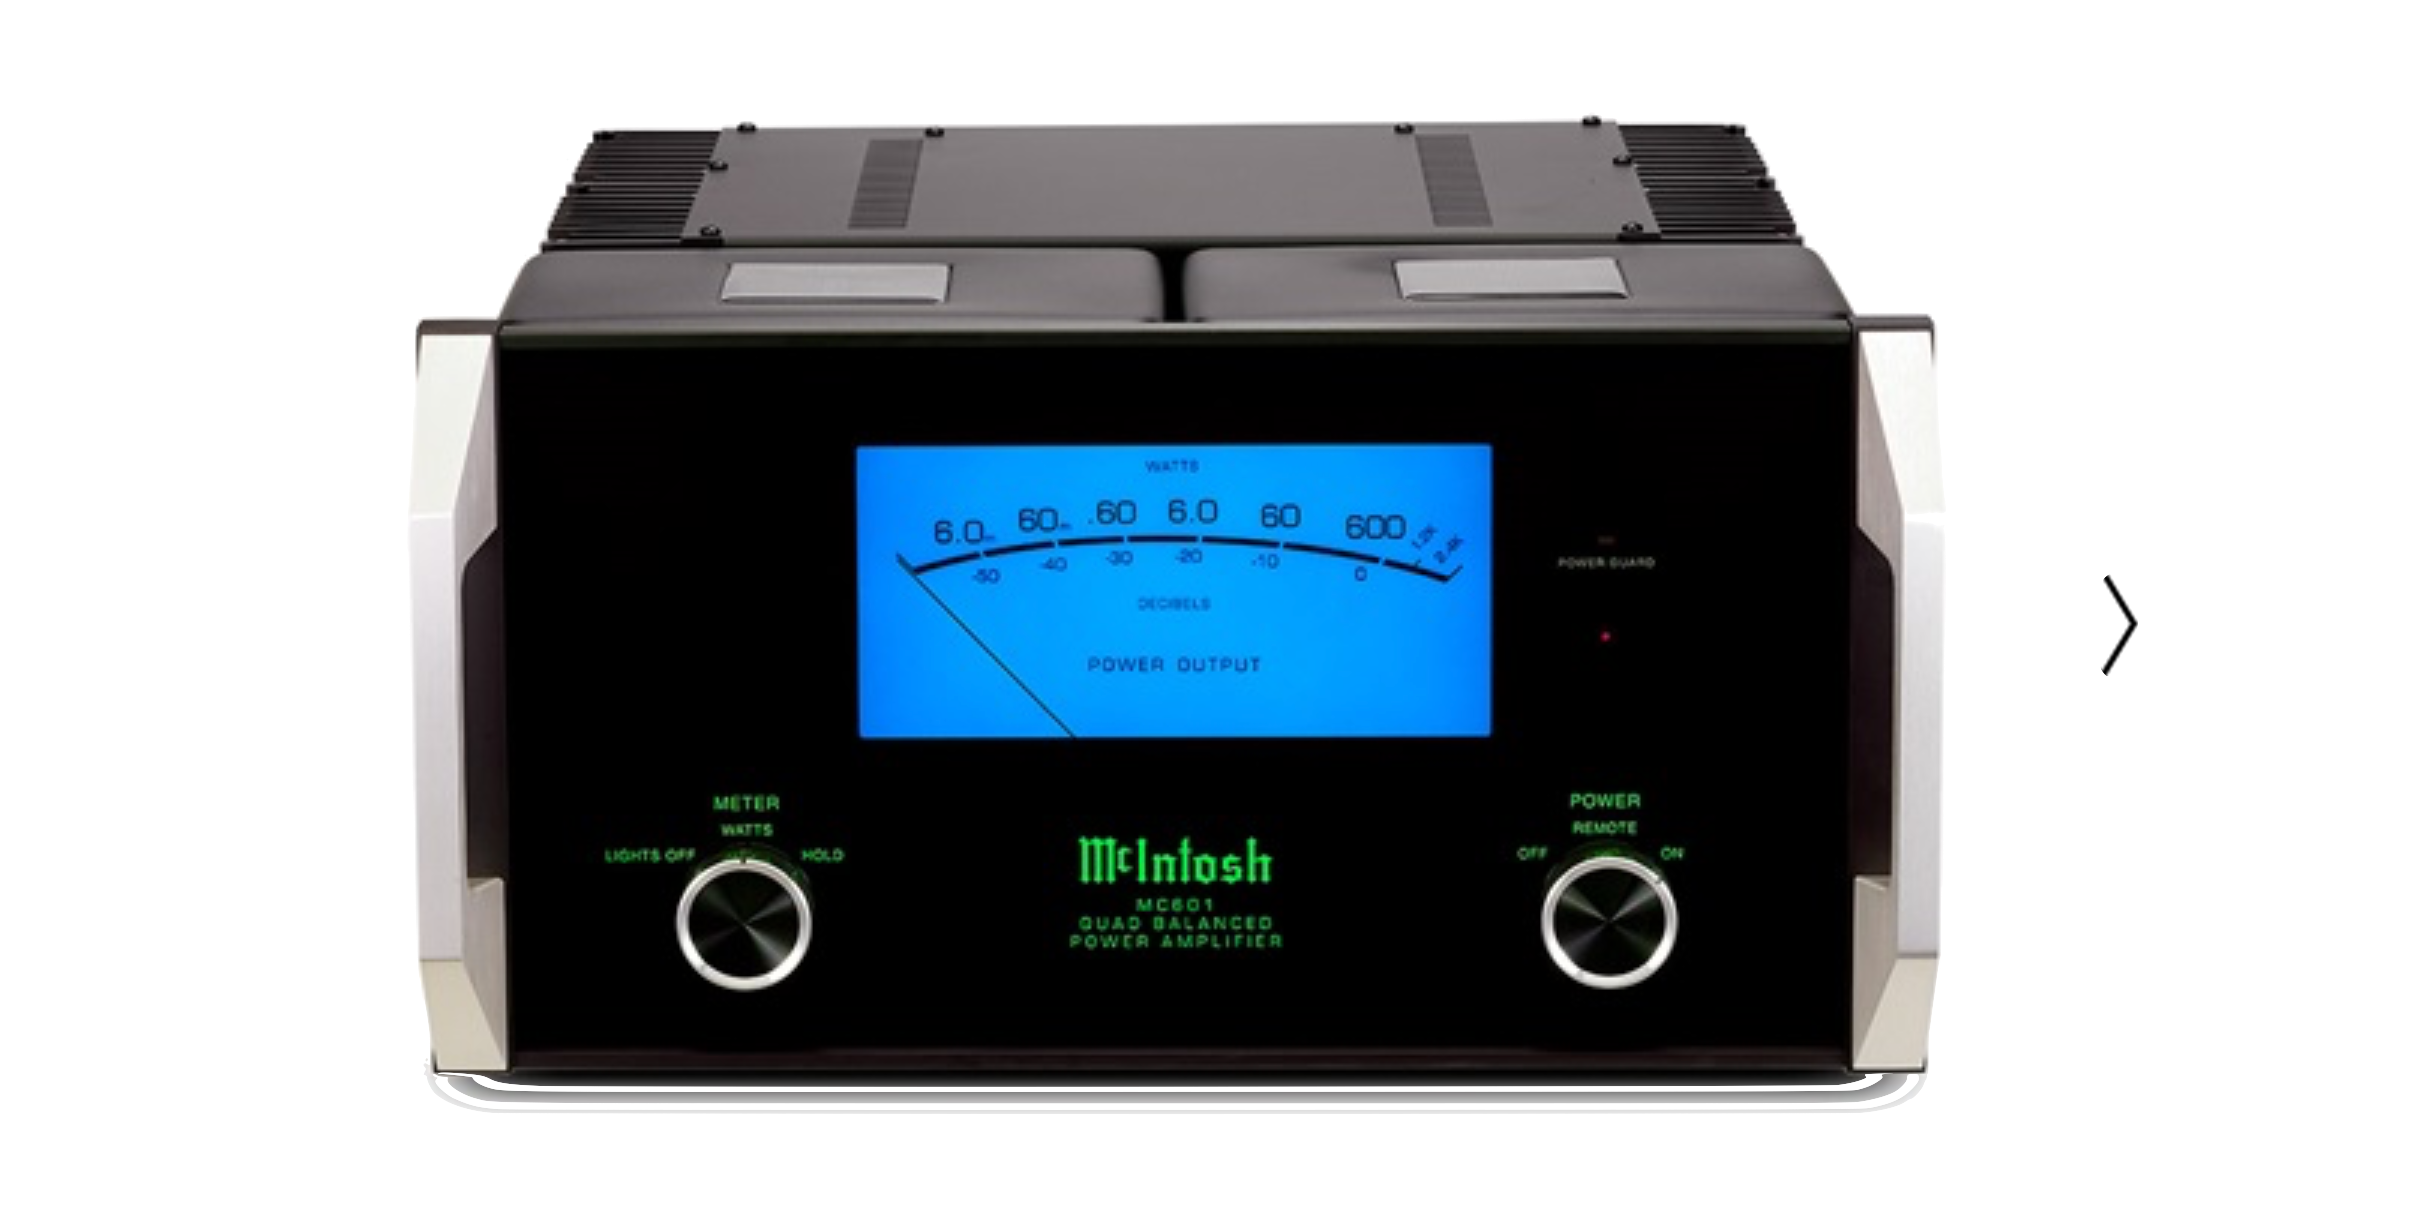 The MC601 monoblock amplifier features the classic McIntosh design yet is timelessly handsome. It produces an extraordinary 600 watts of power – more than enough to drive virtually any loudspeaker